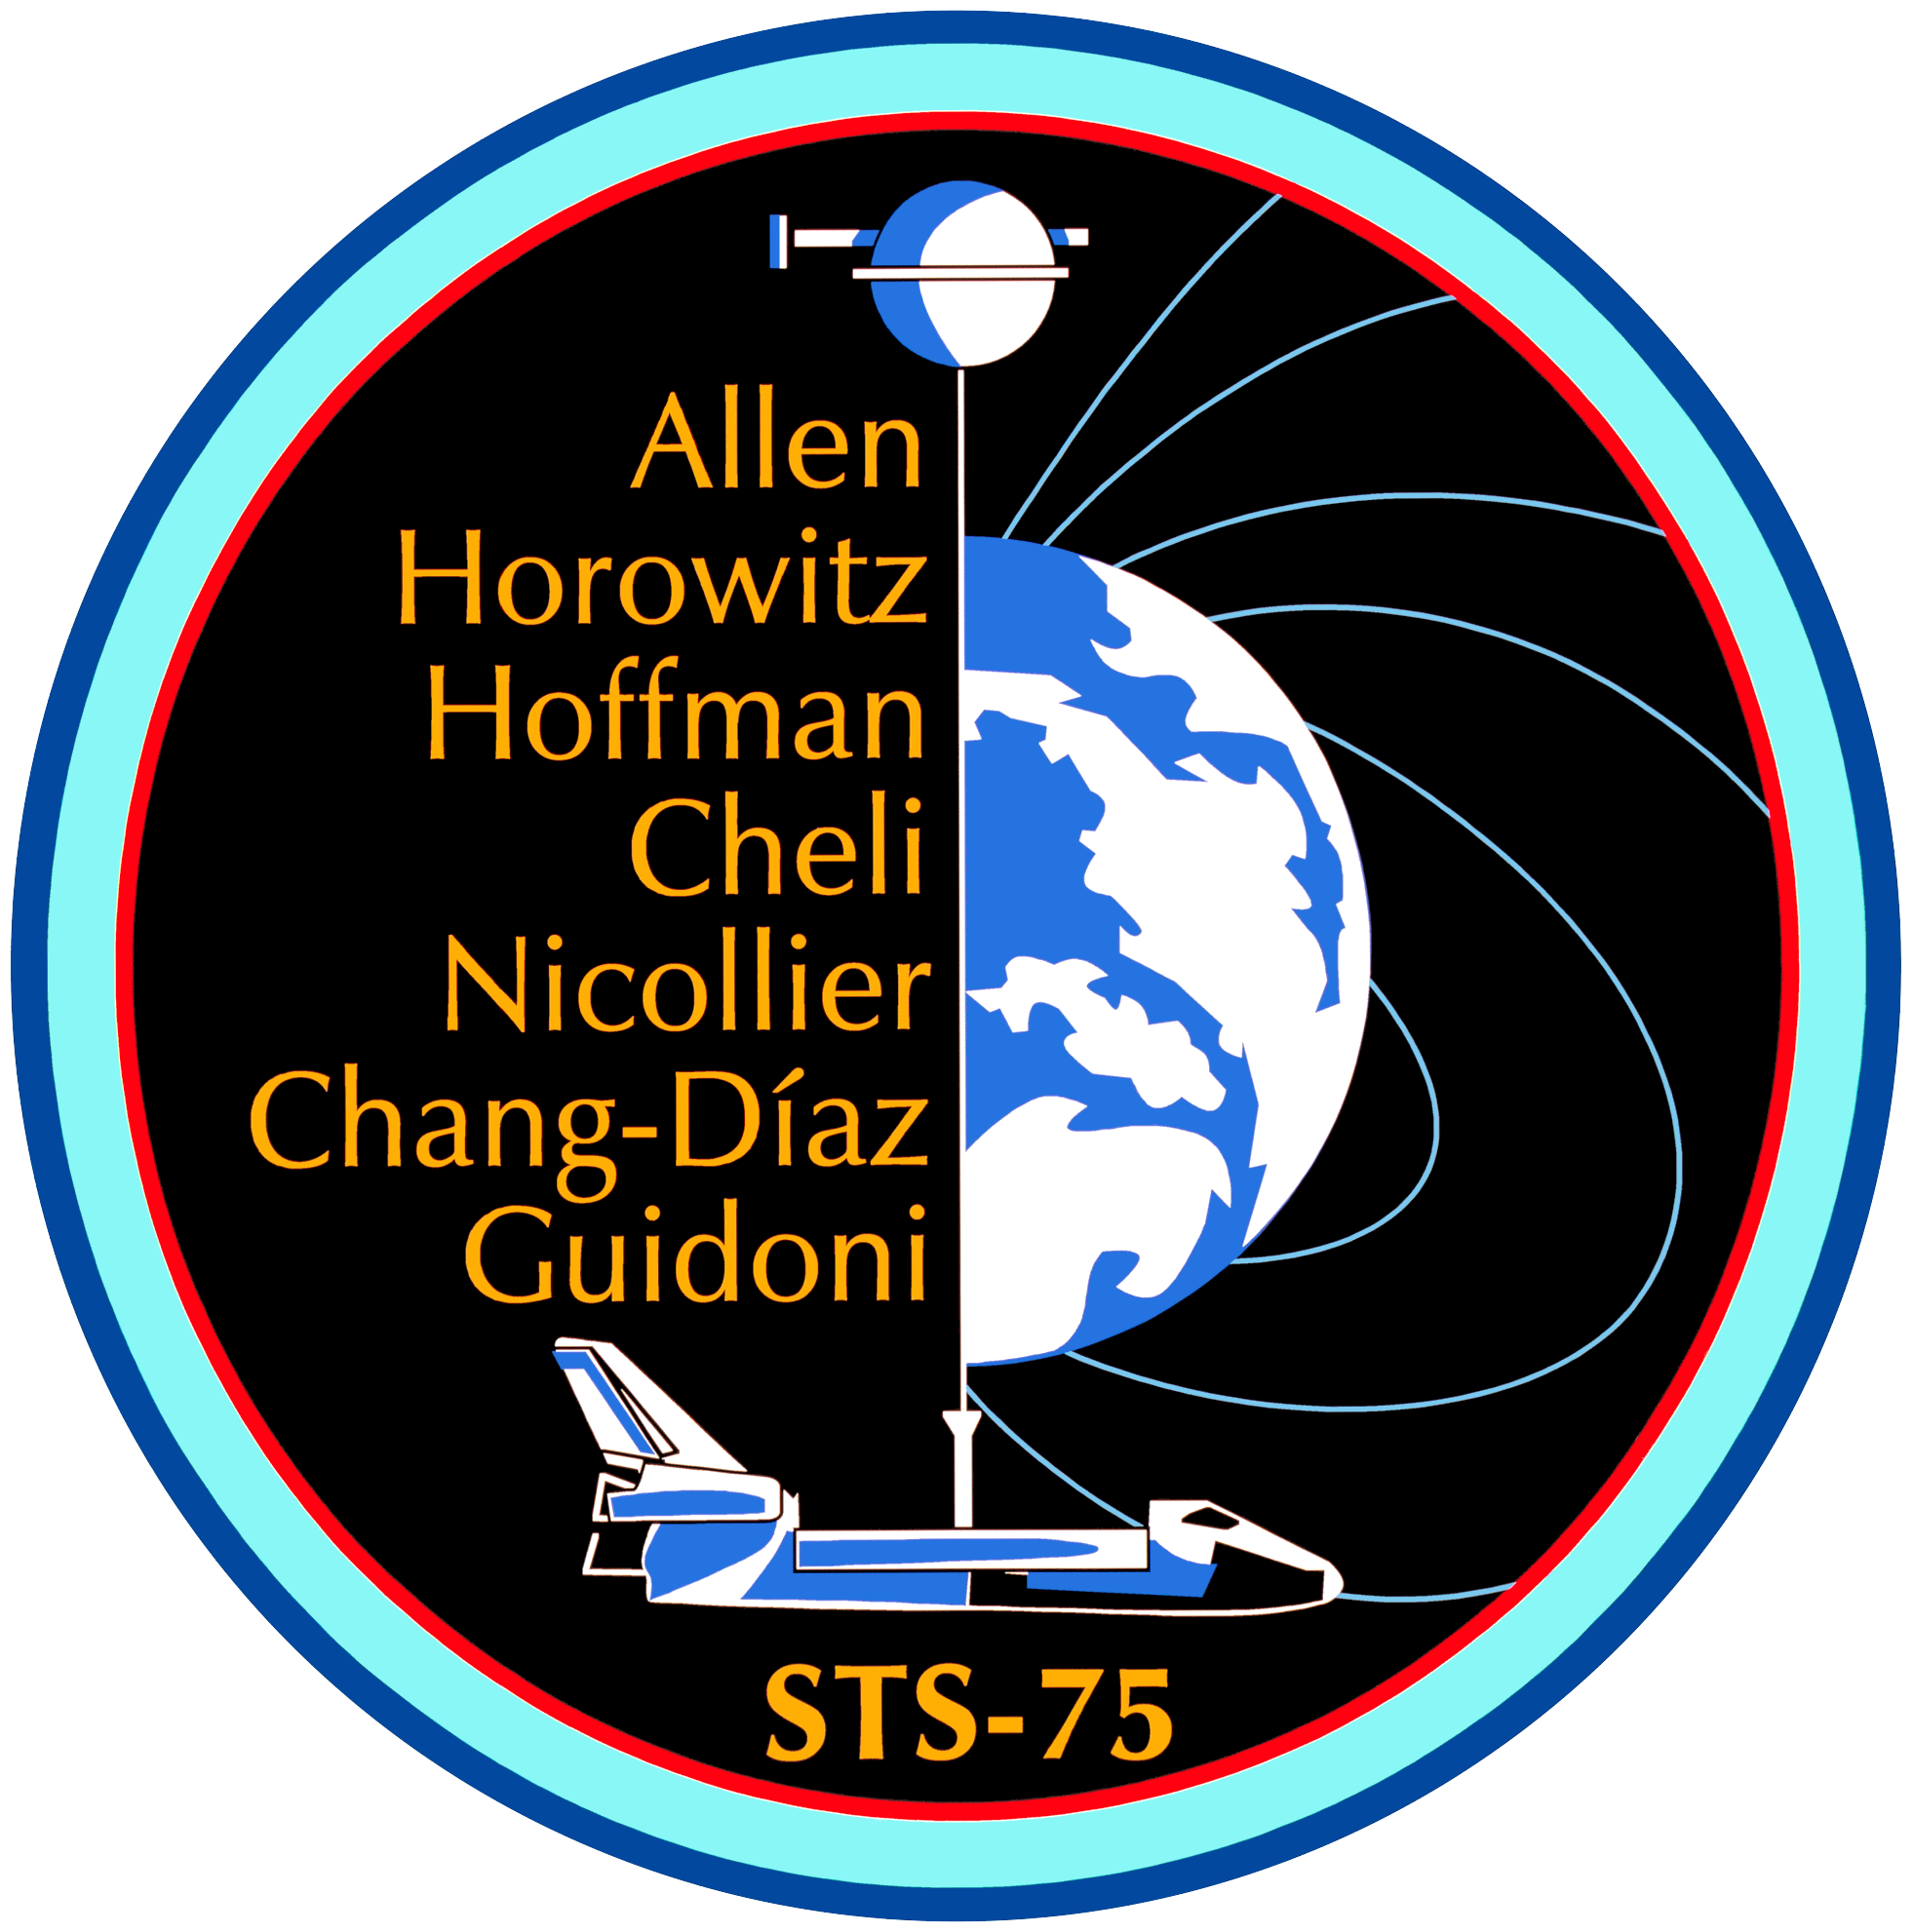 File Sts 75 Patch Png Wikimedia Commons